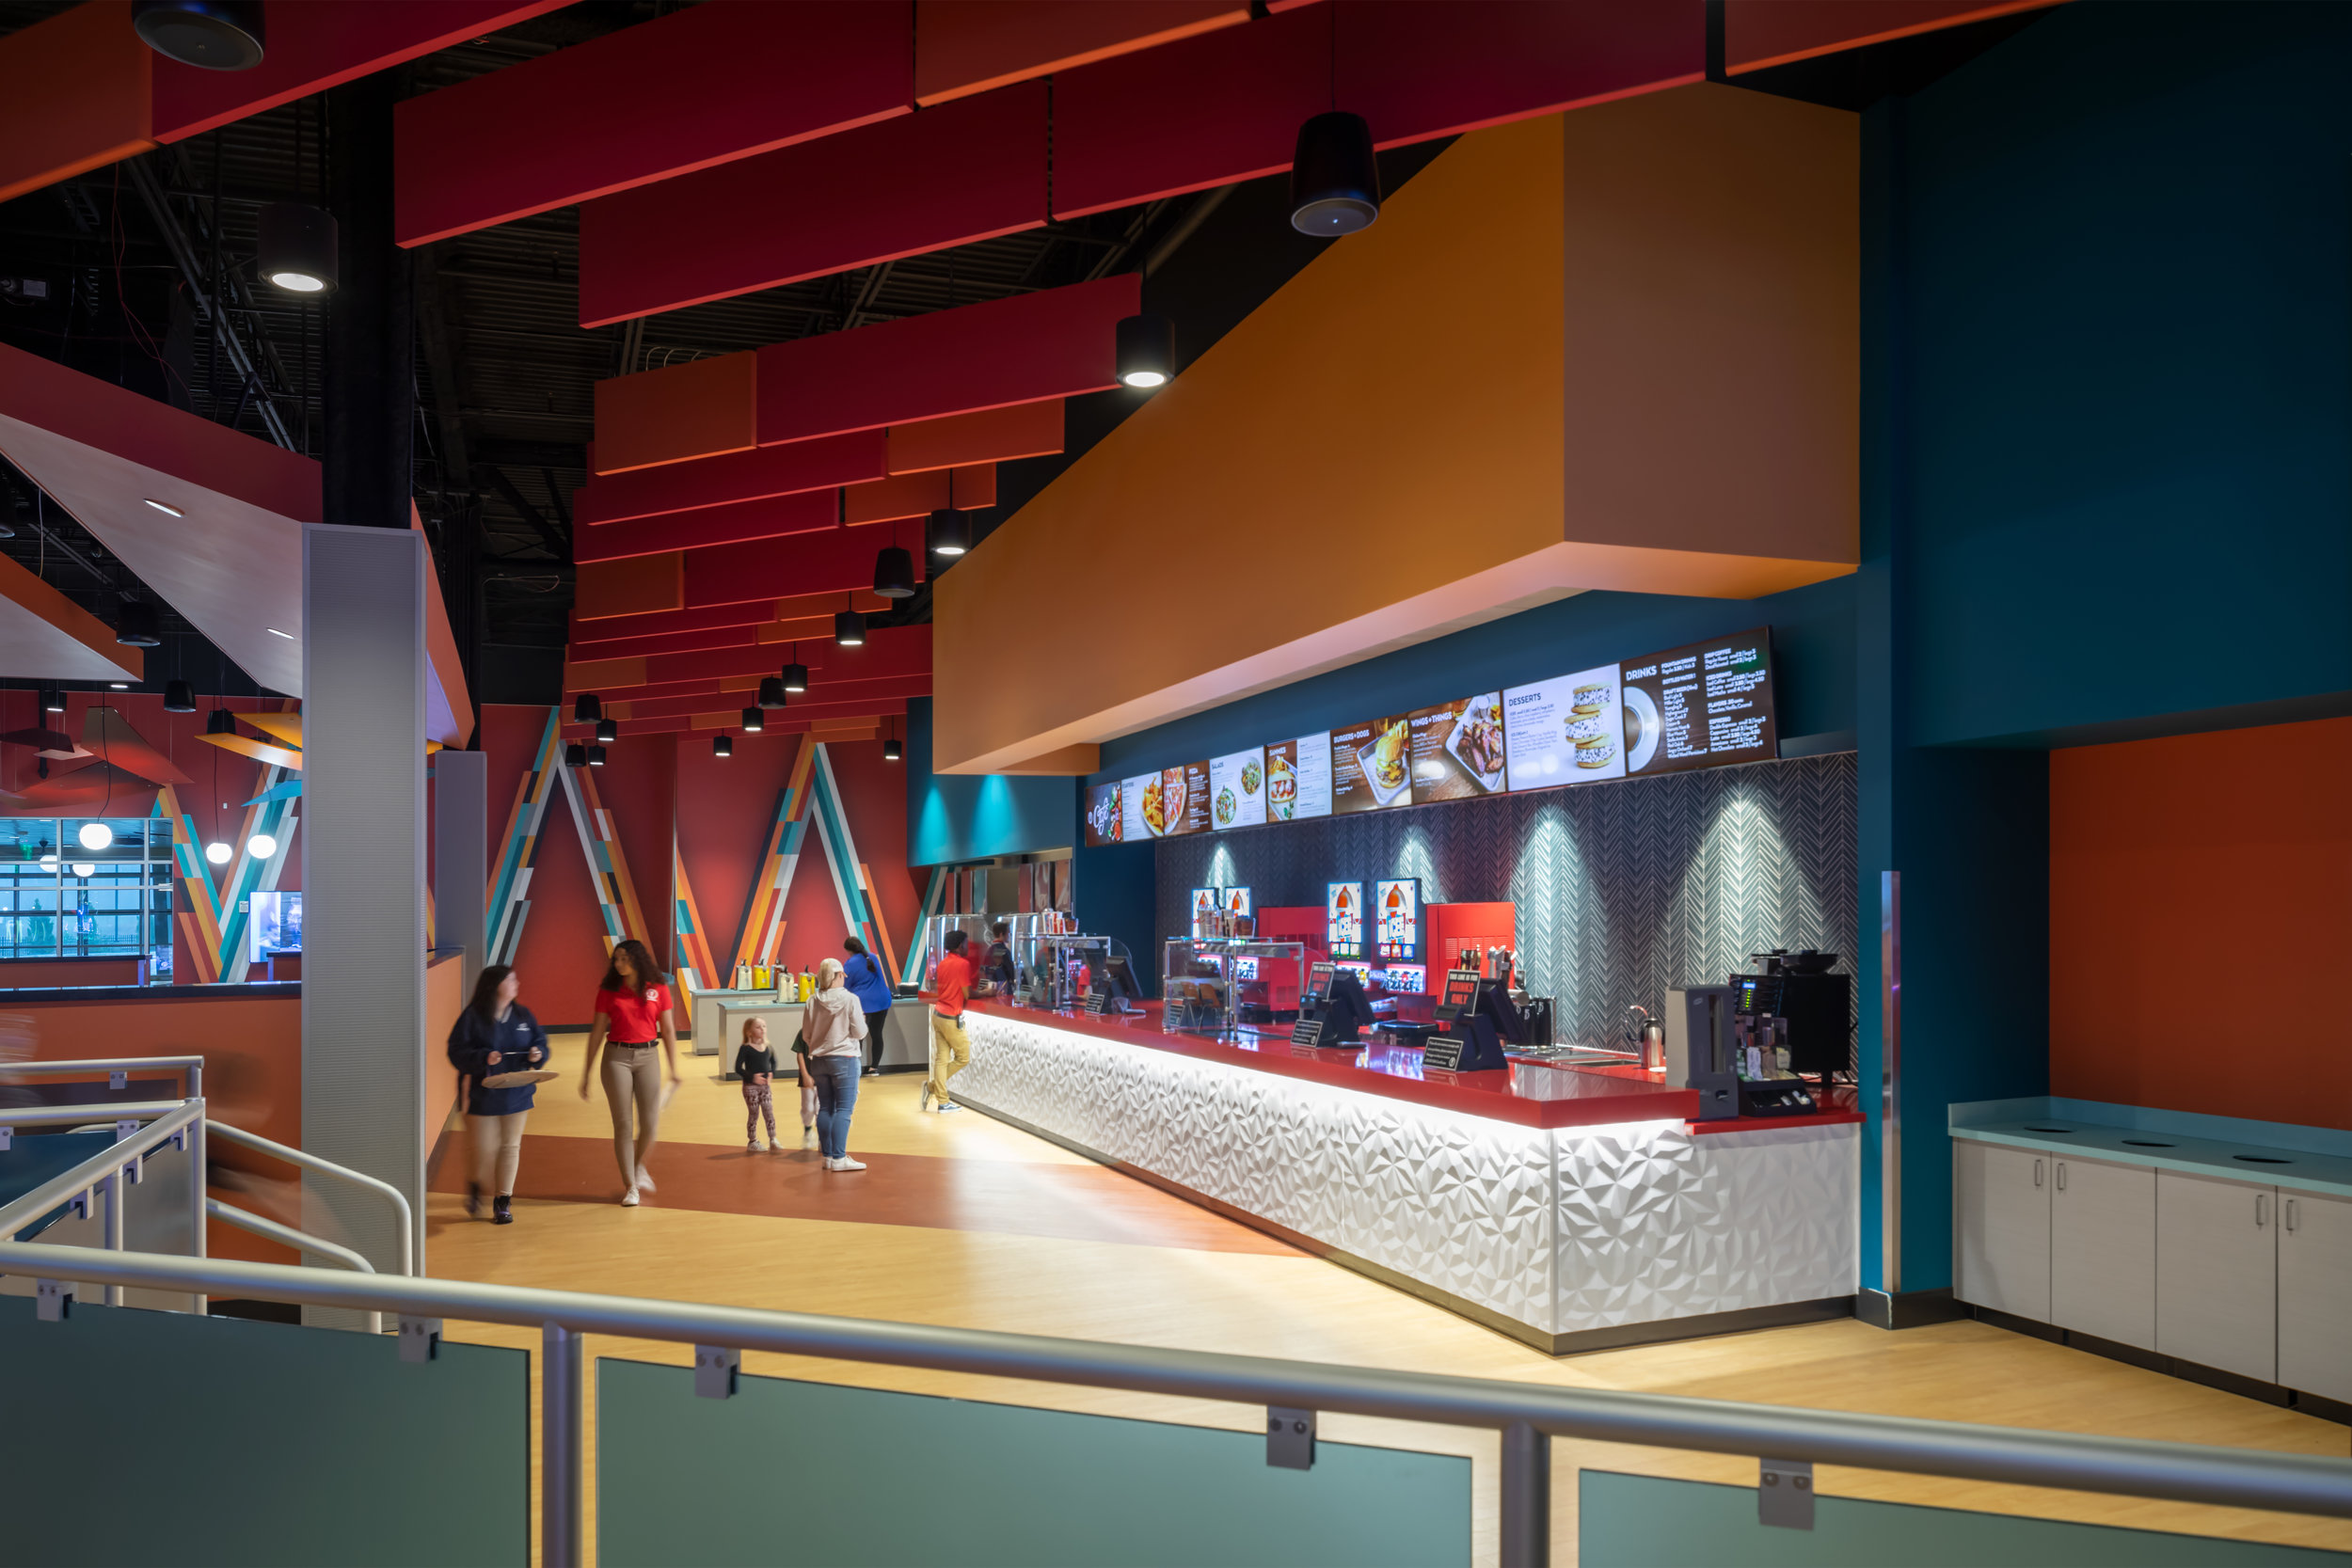 ADW-Entertainment-Frankie's-Fun-Park-Huntersville-NC-Interior-Cafe Registers.jpg